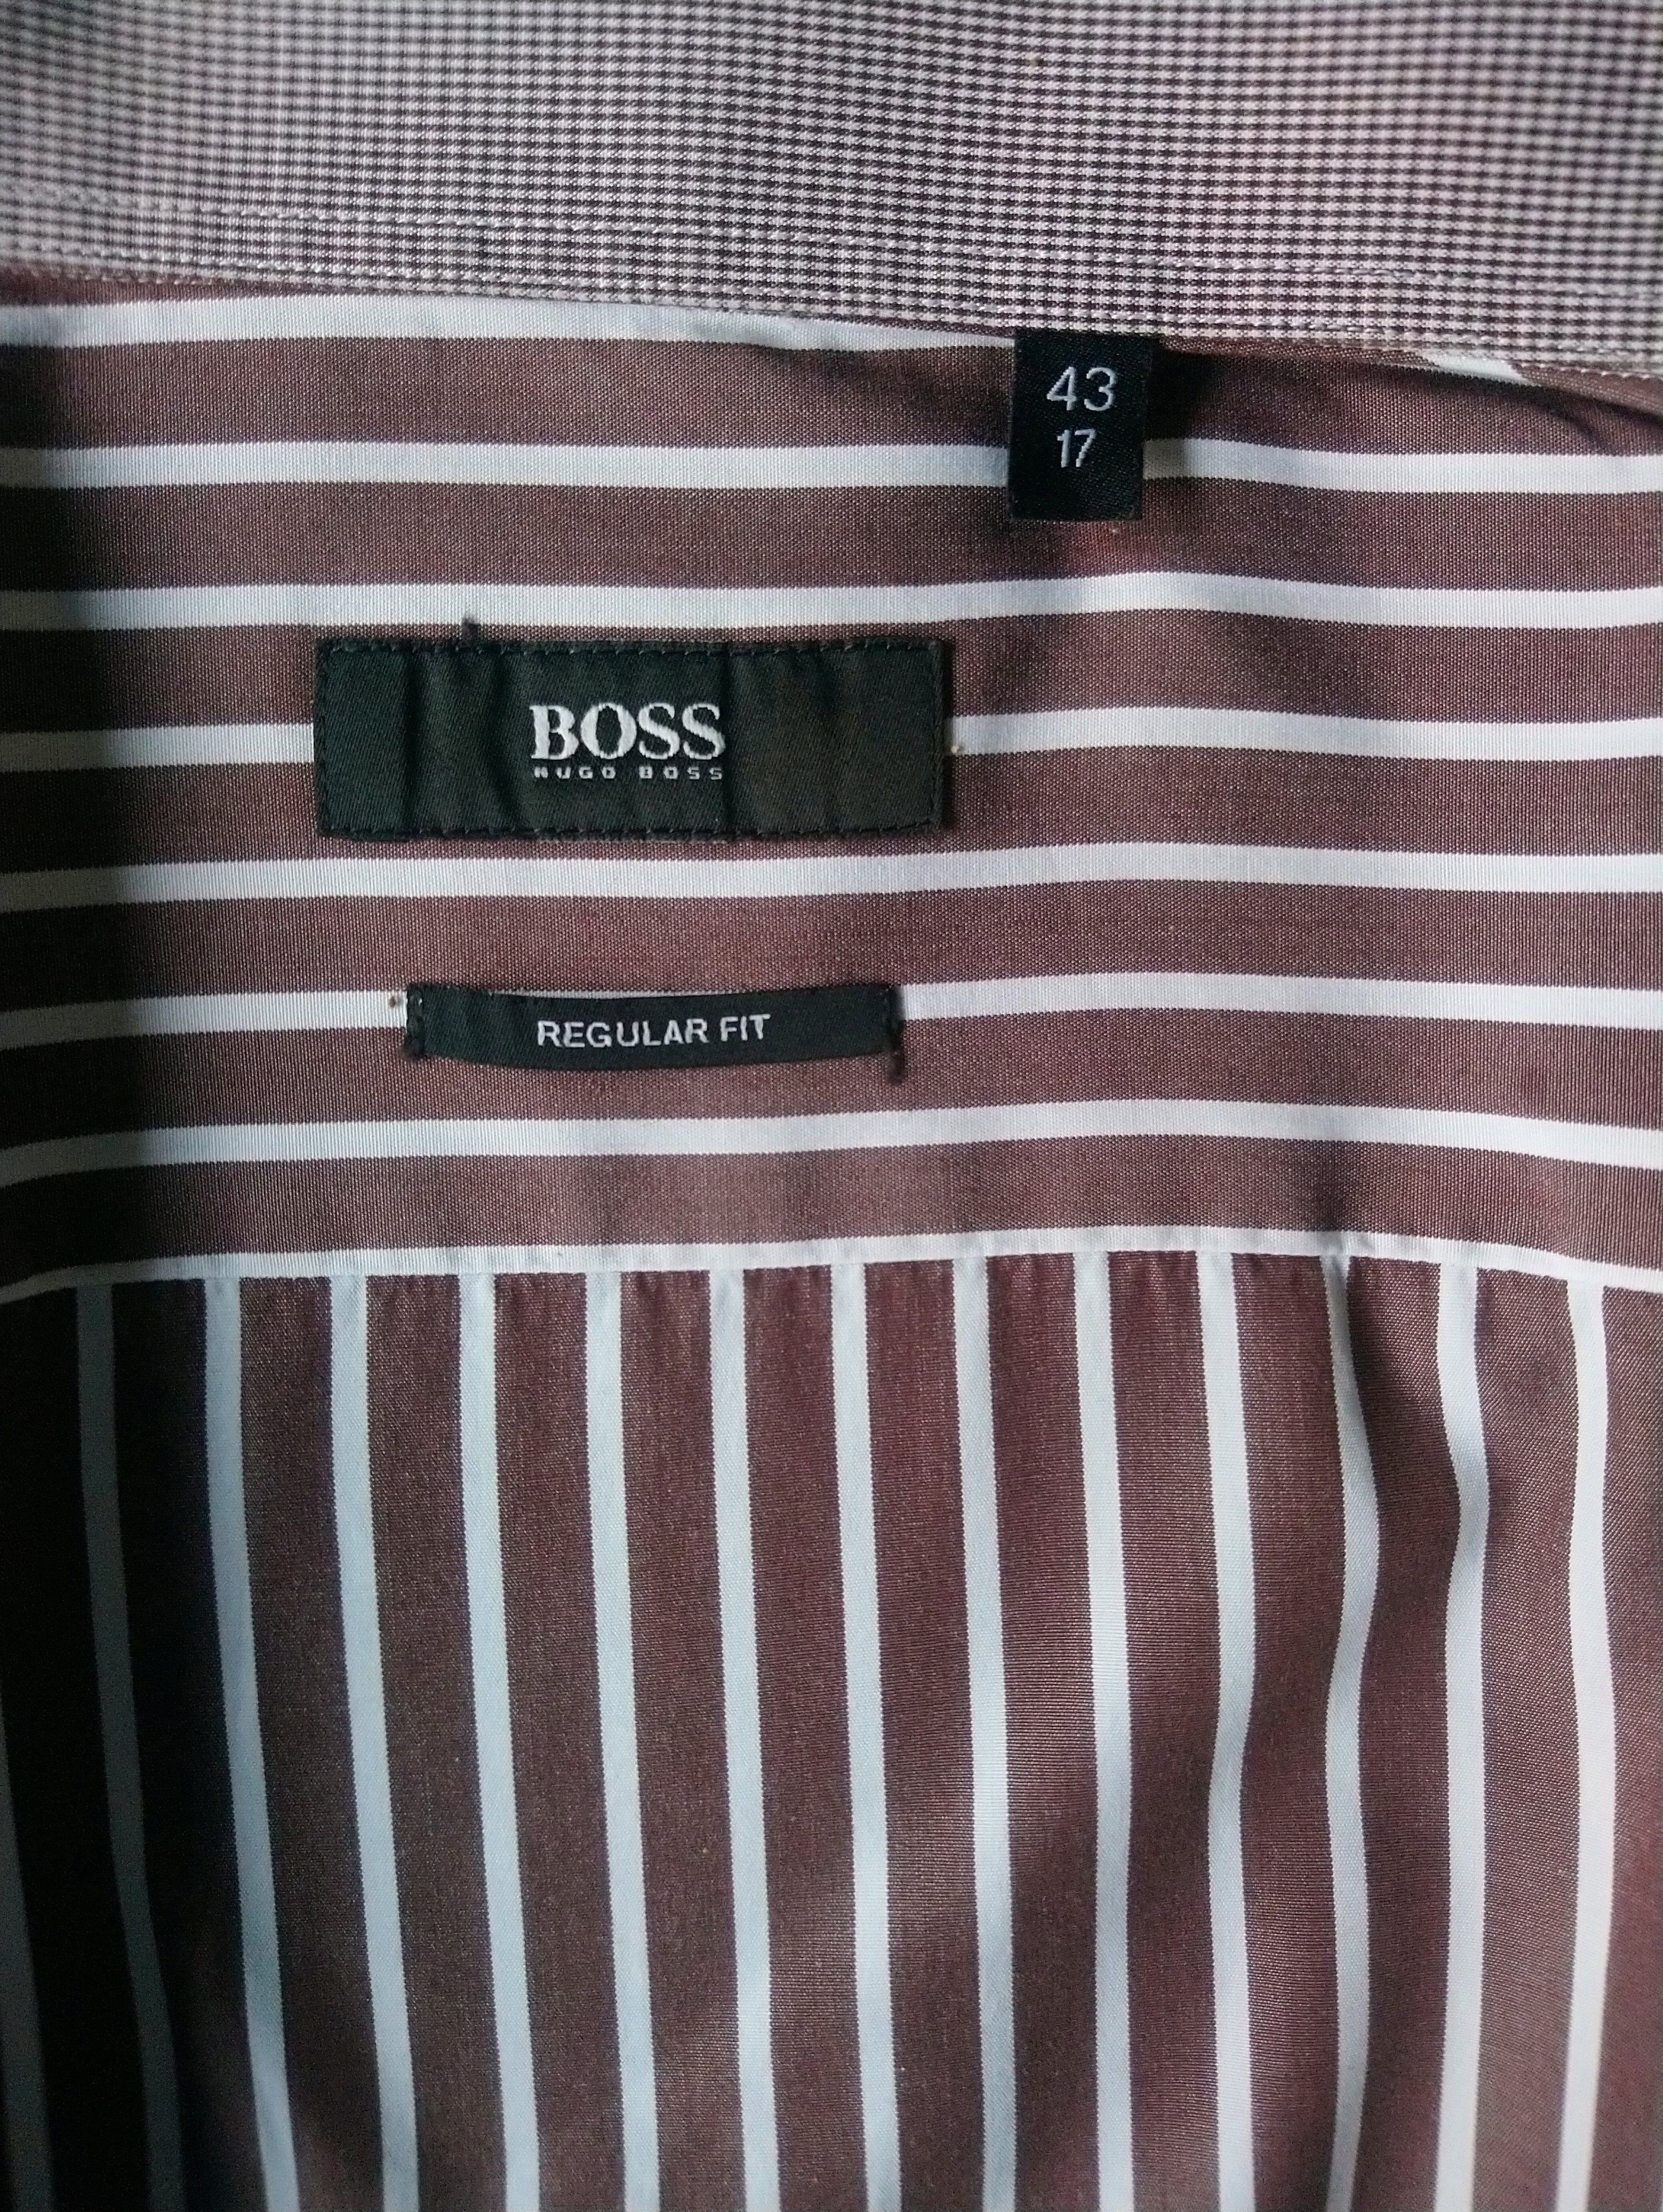 Hugo Boss overhemd. Bruin Wit gestreept. Maat 43 / XL. Regular Fit. - ecogents